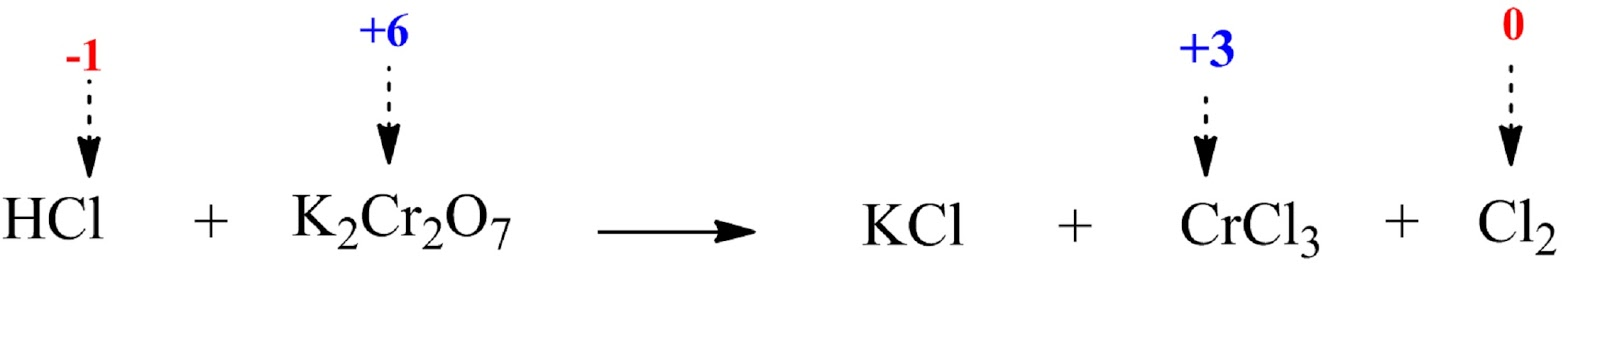 unbalanced reaction between HCl and K2Cr2O7